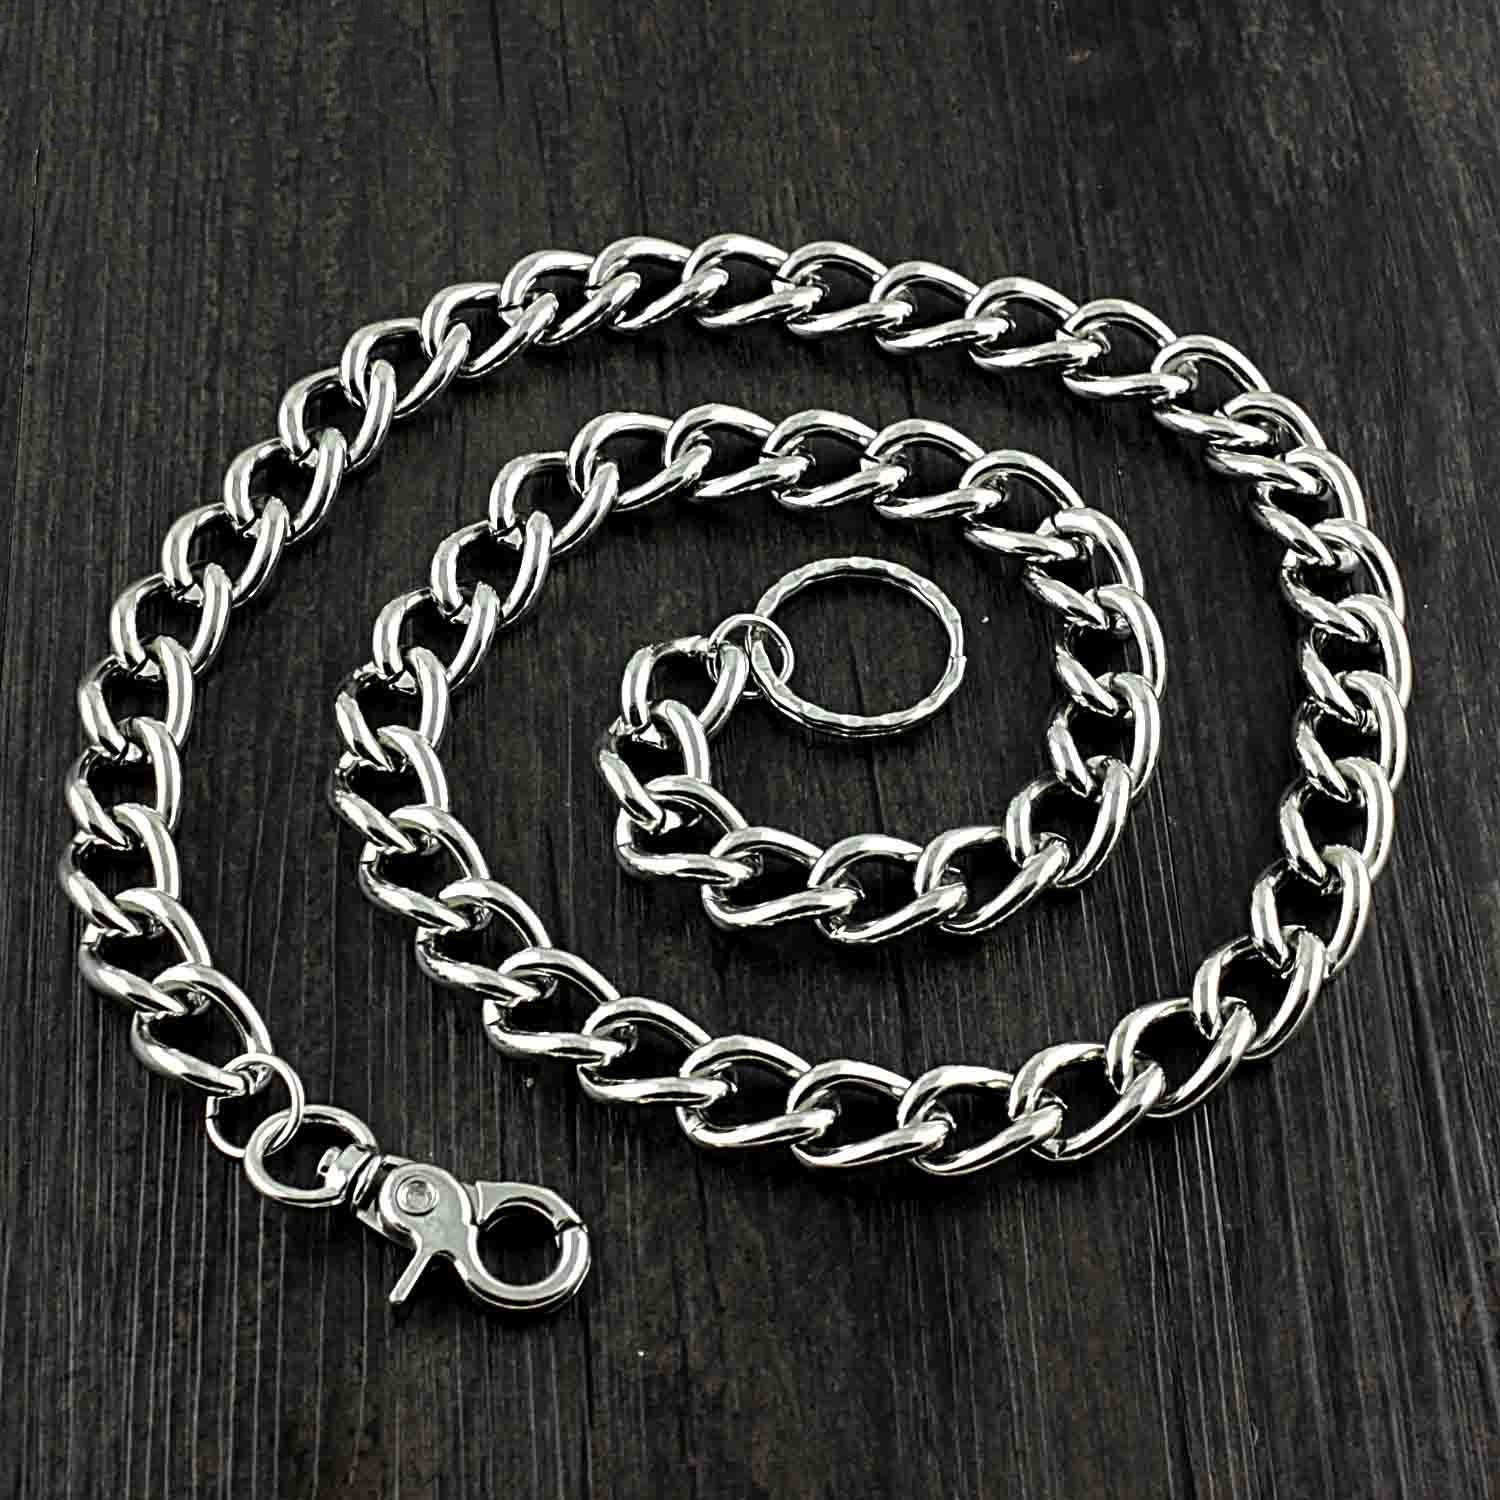 SOLID STAINLESS STEEL BIKER SILVER WALLET CHAINs LONG PANTS CHAIN JEAN CHAIN FOR MEN